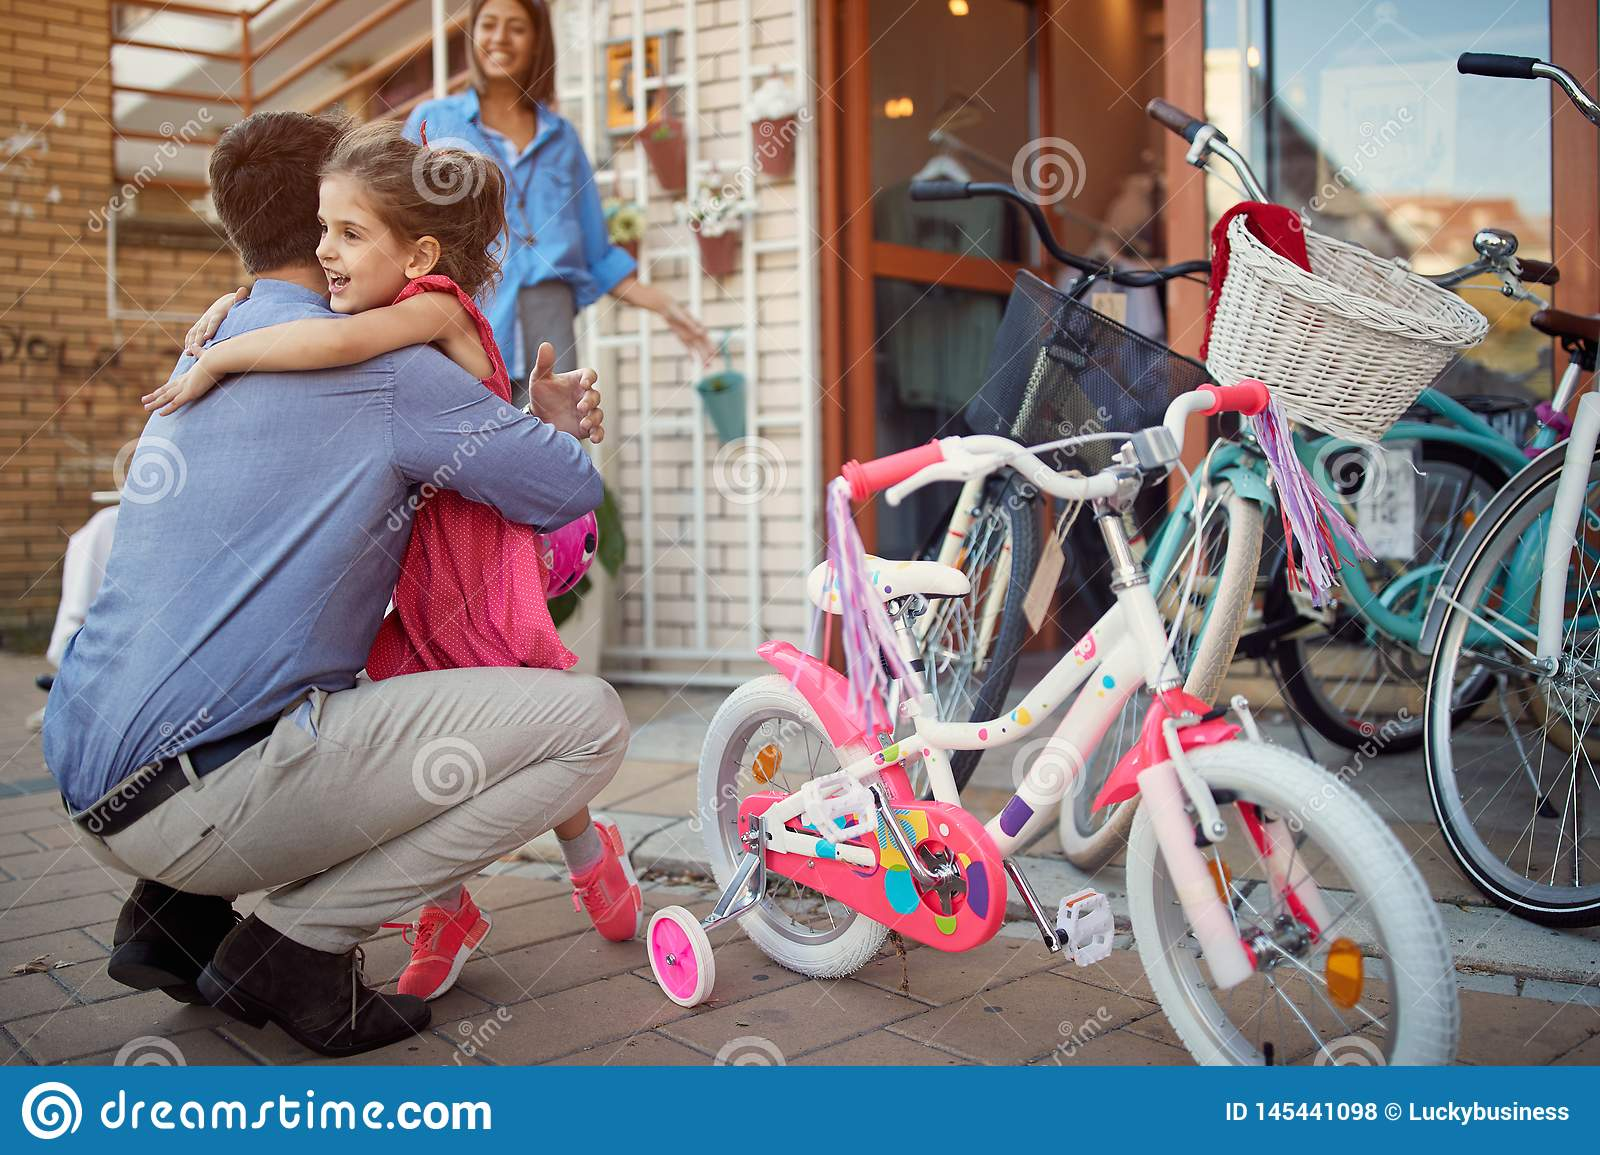 Father and daughter shopping new bicycle in bike shop